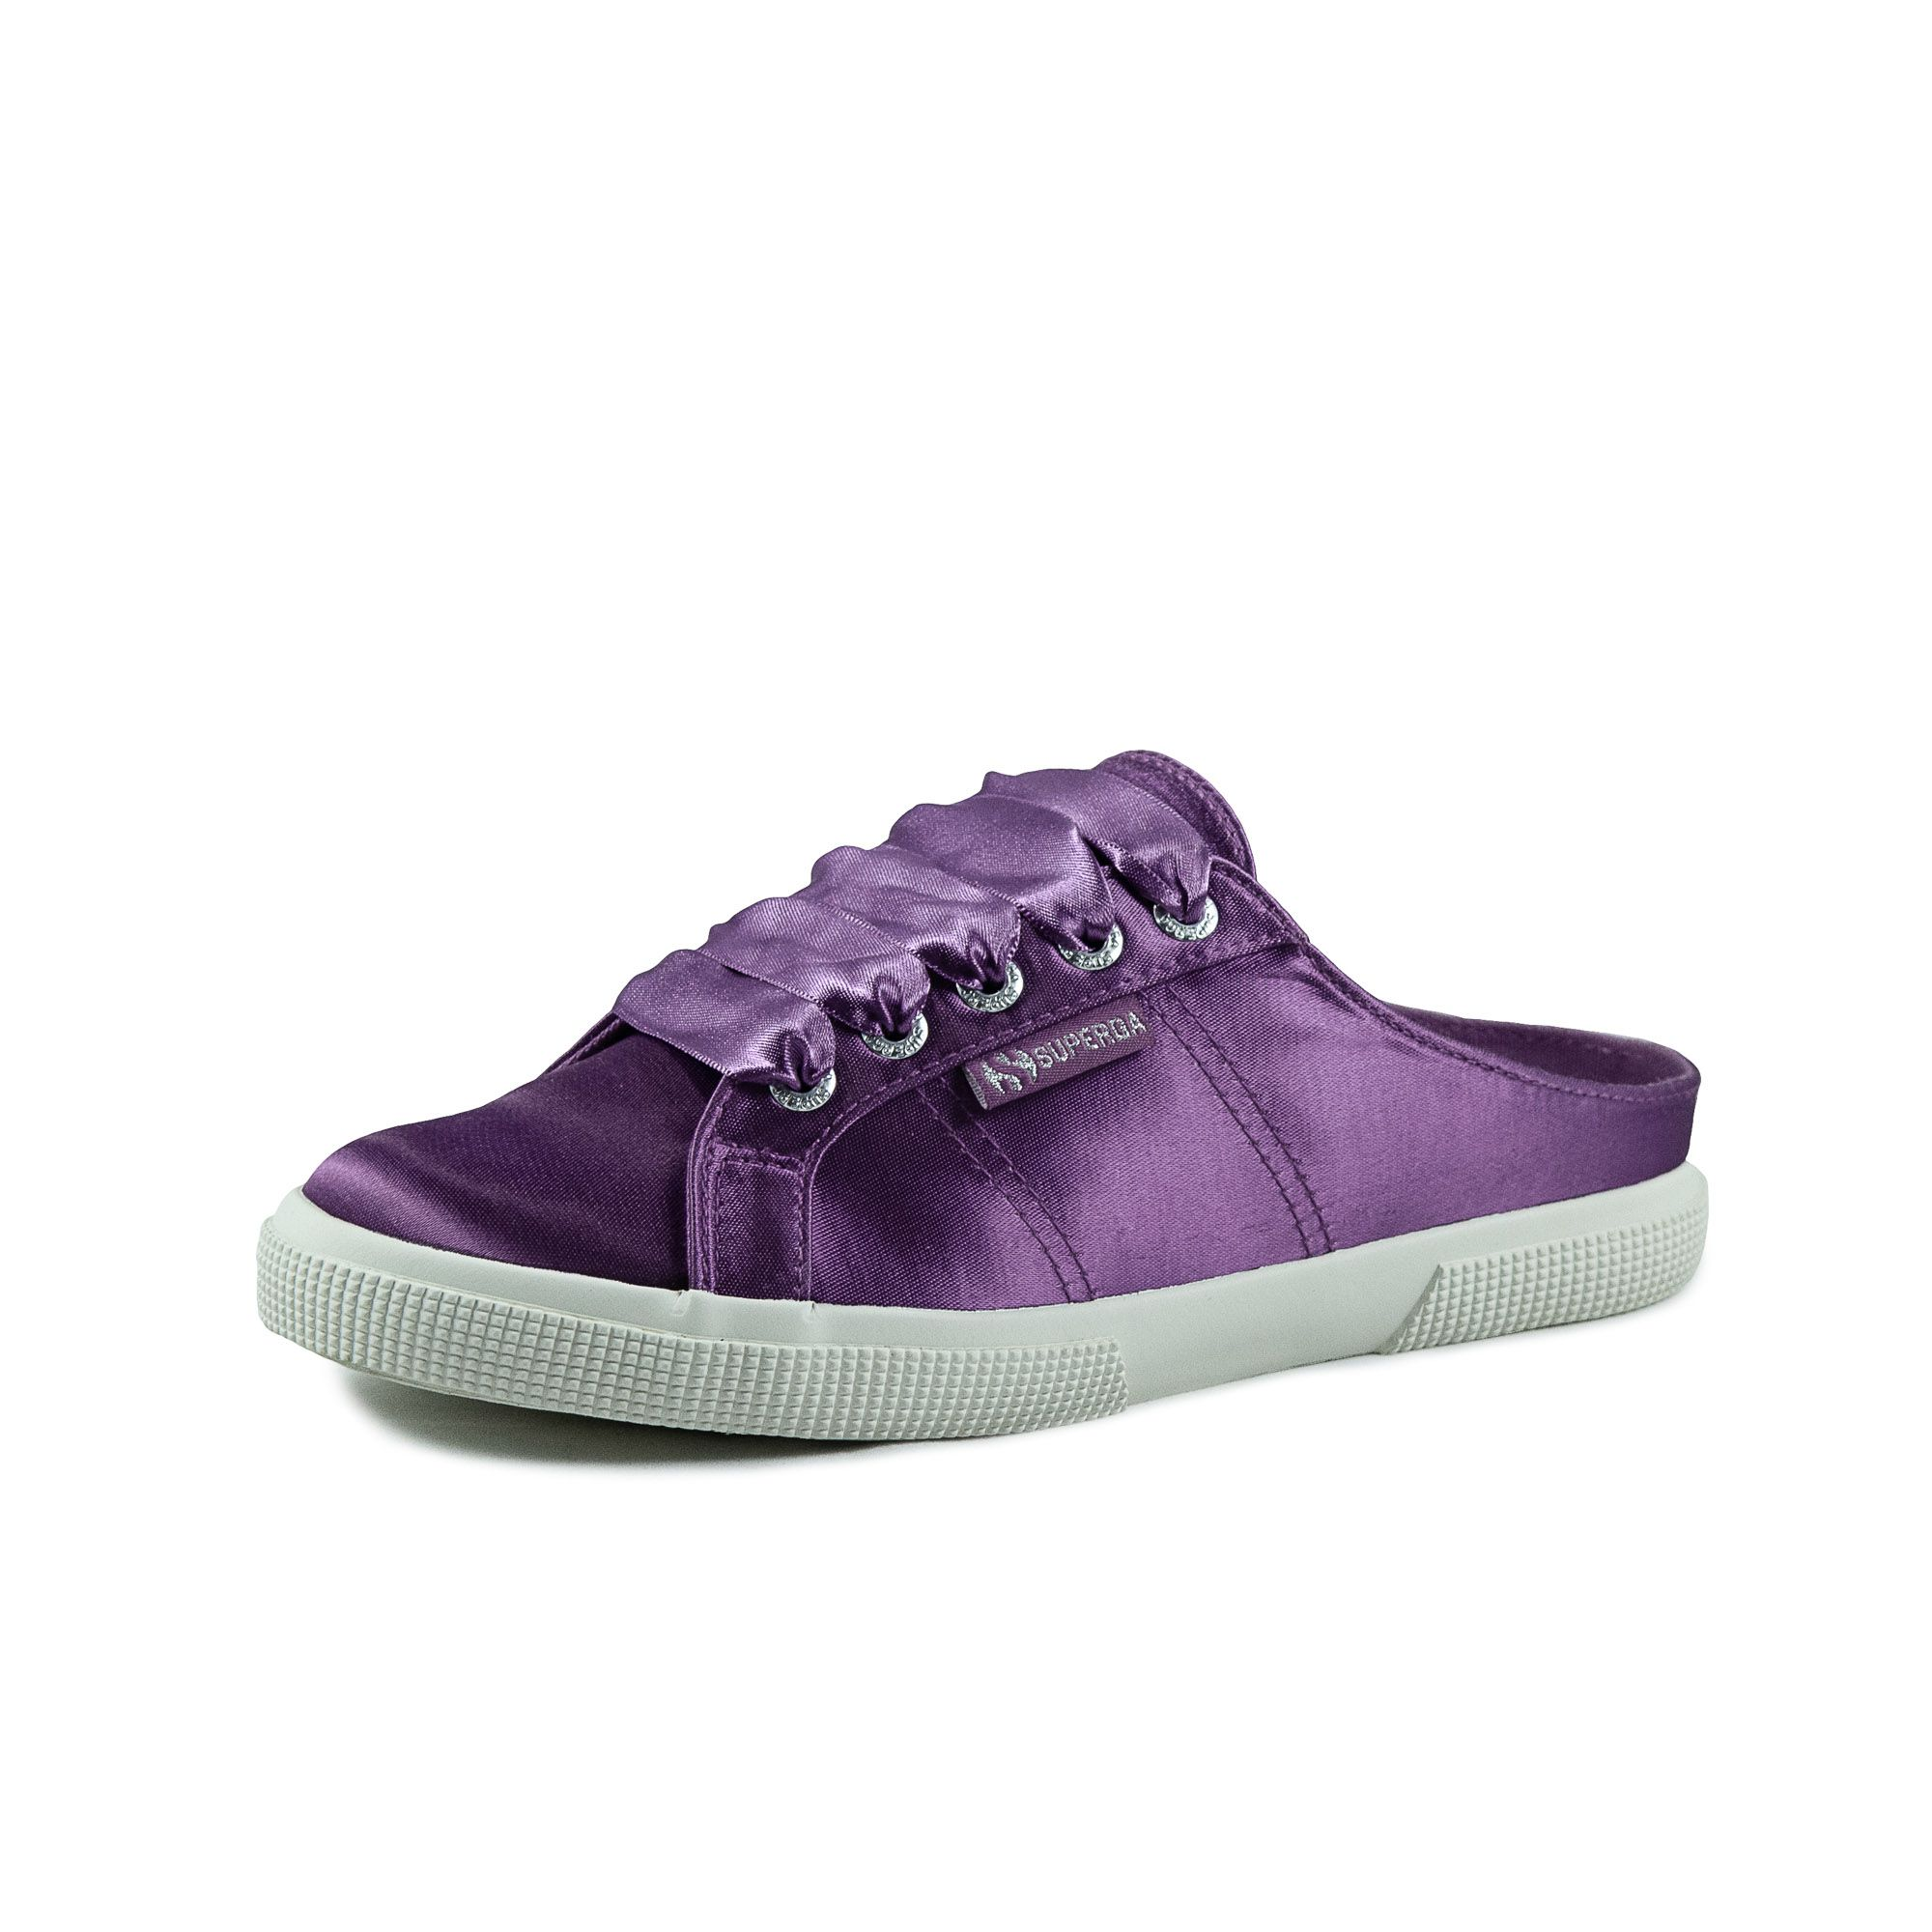 2288 BABUCHE SATINW VIOLET PURPLE